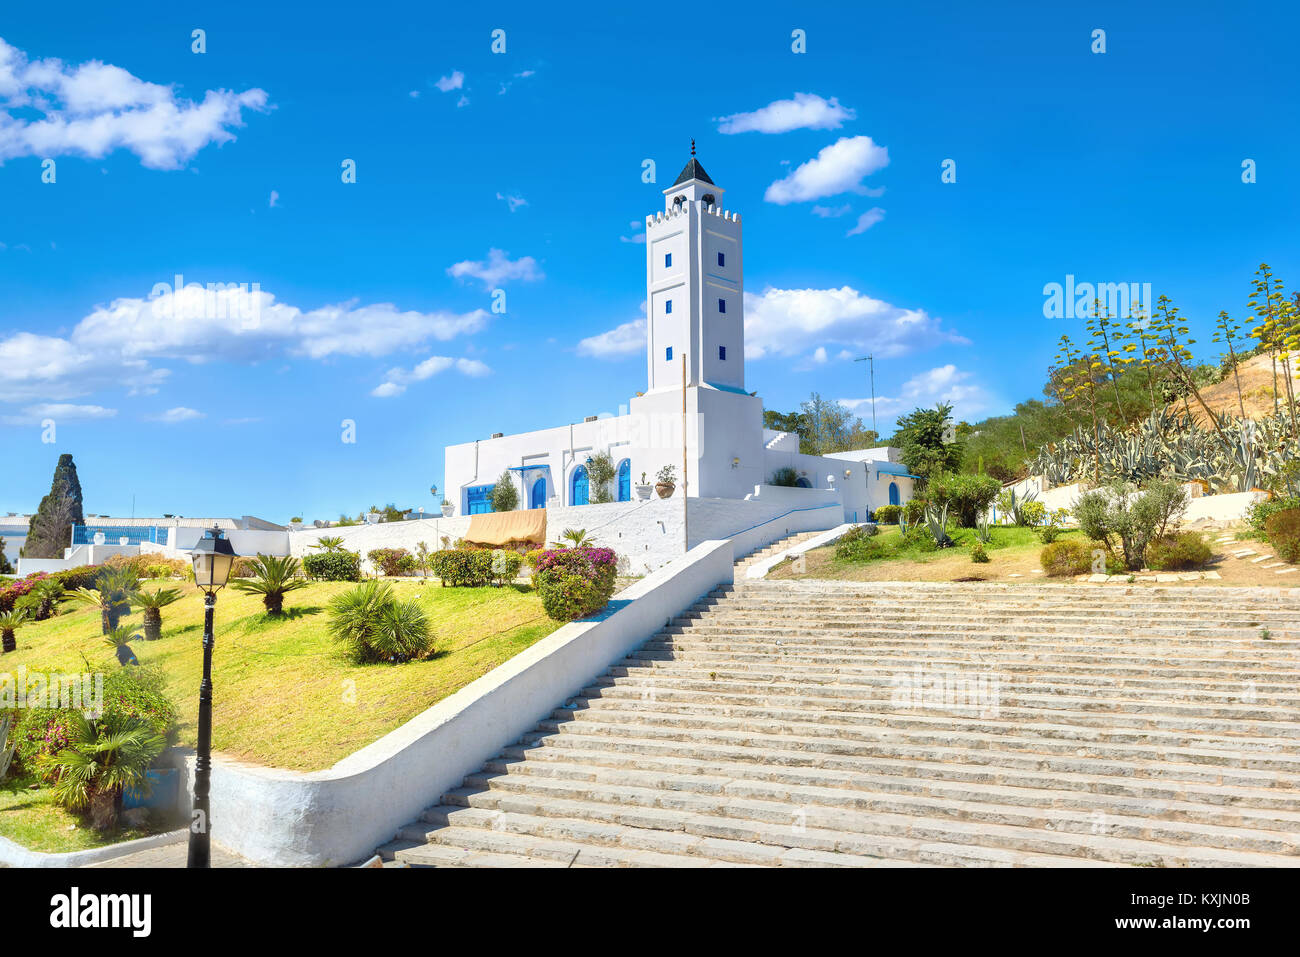 View of white mosque in Sidi Bou Said village. Tunisia, North Africa - Stock Image